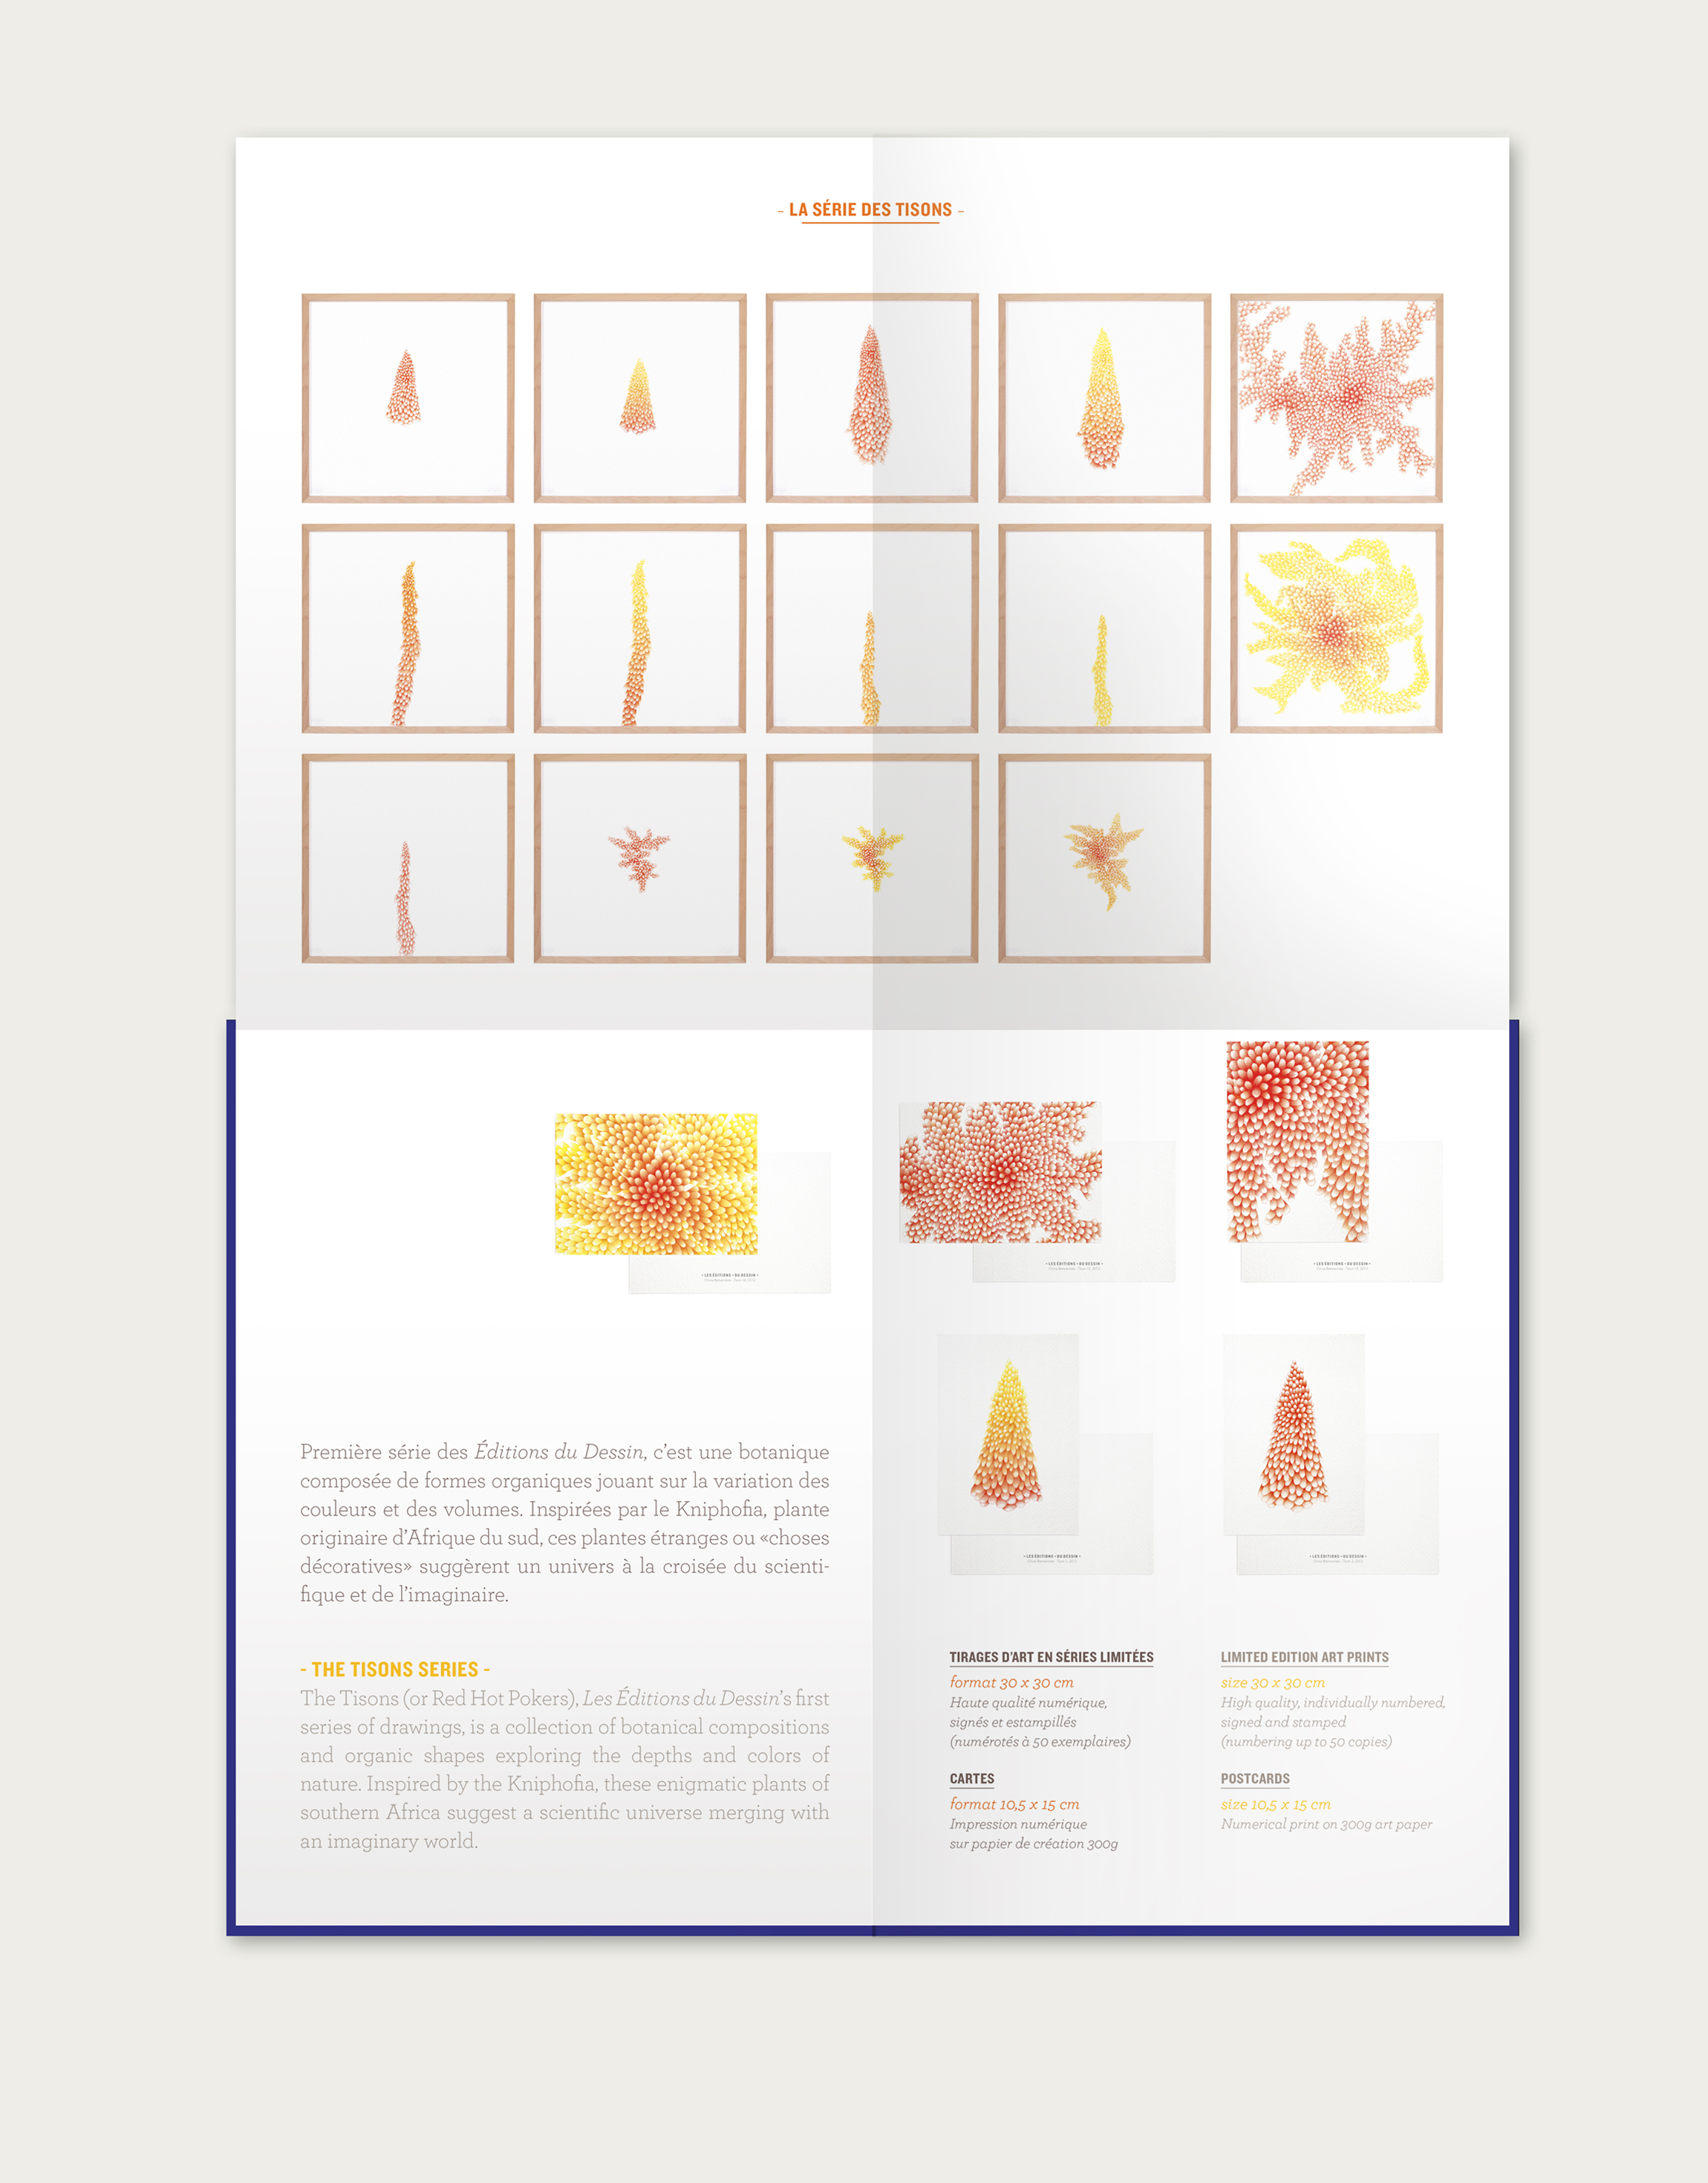 Les éditions du dessin, brochure design & DA by Tomoe Sugiura, 2013